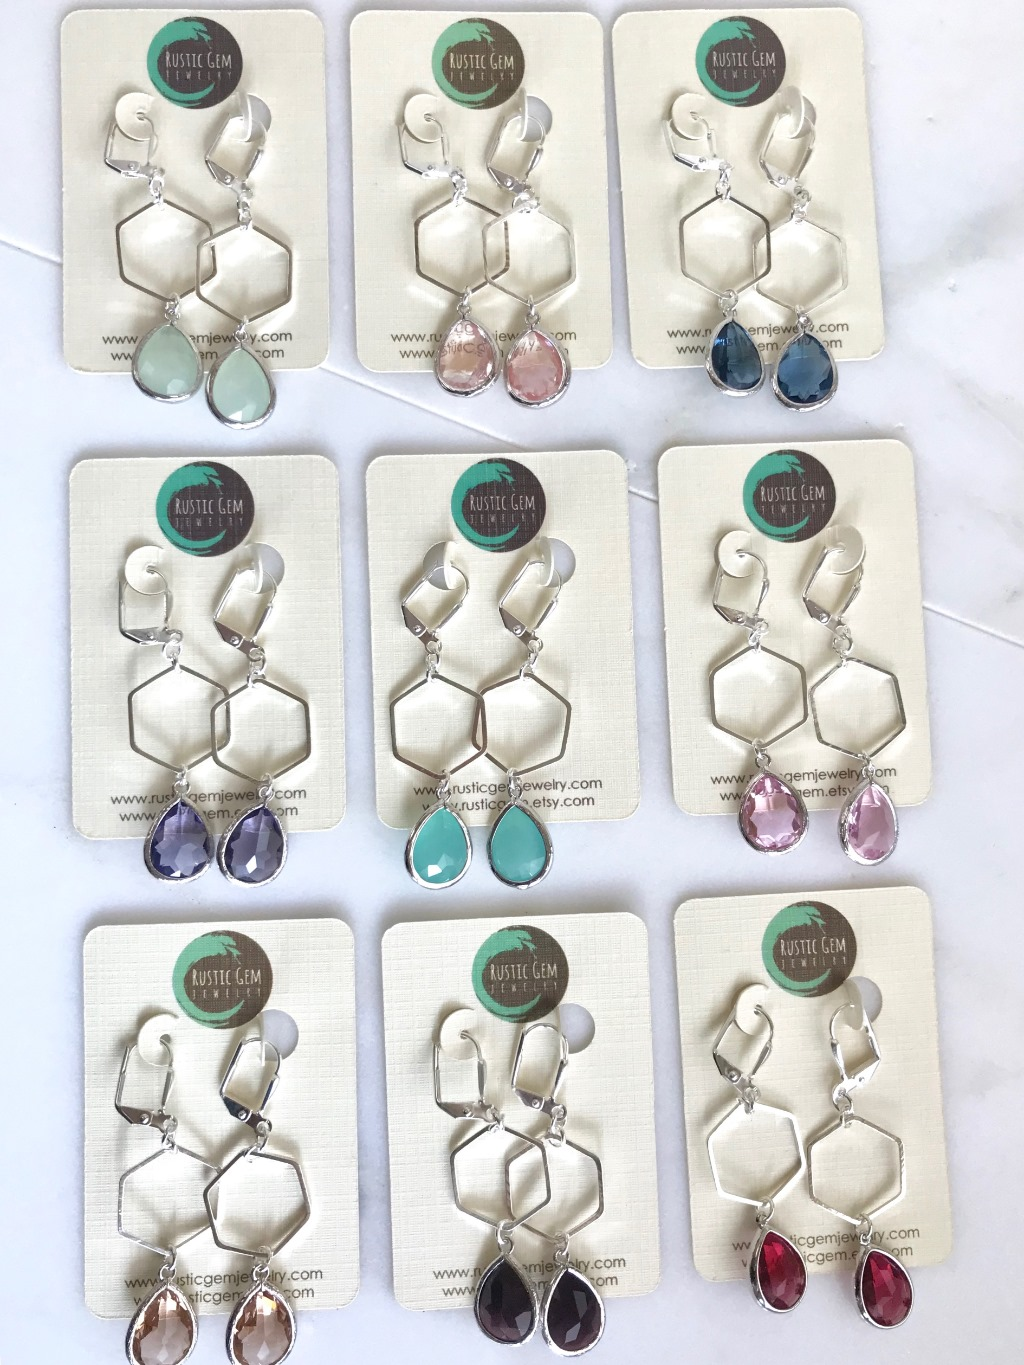 Lovely, simple and feminine! These earrings can dress up or down!